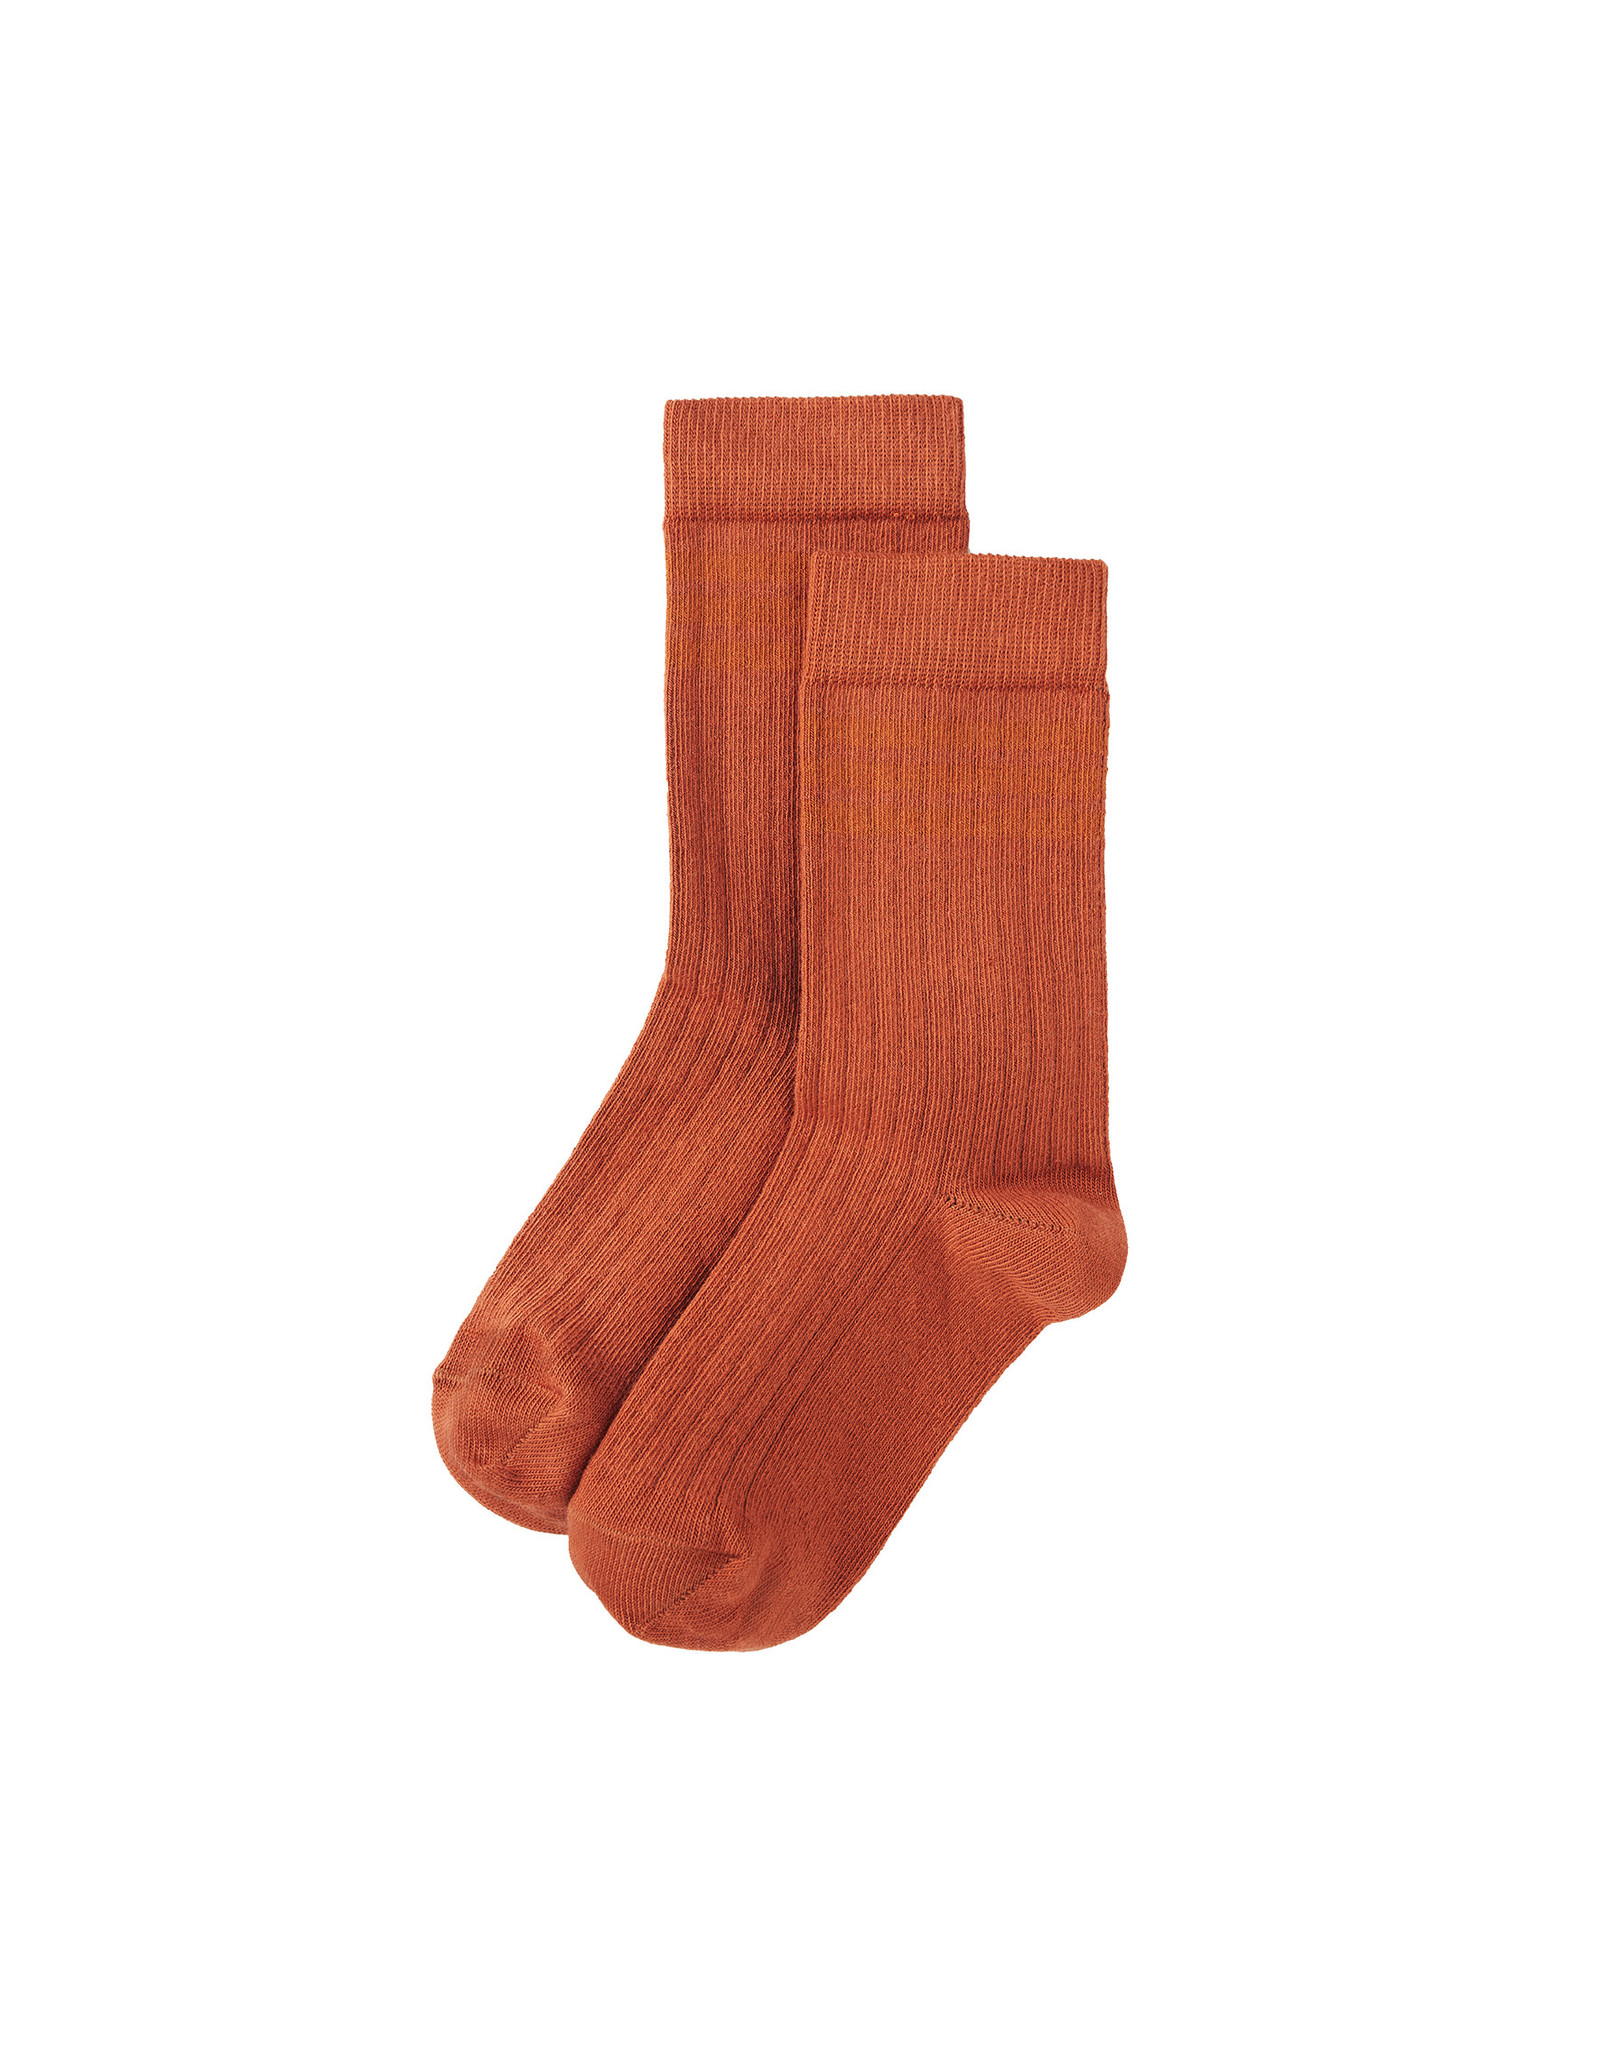 Mingo Socks terracotta/ginger (rib)